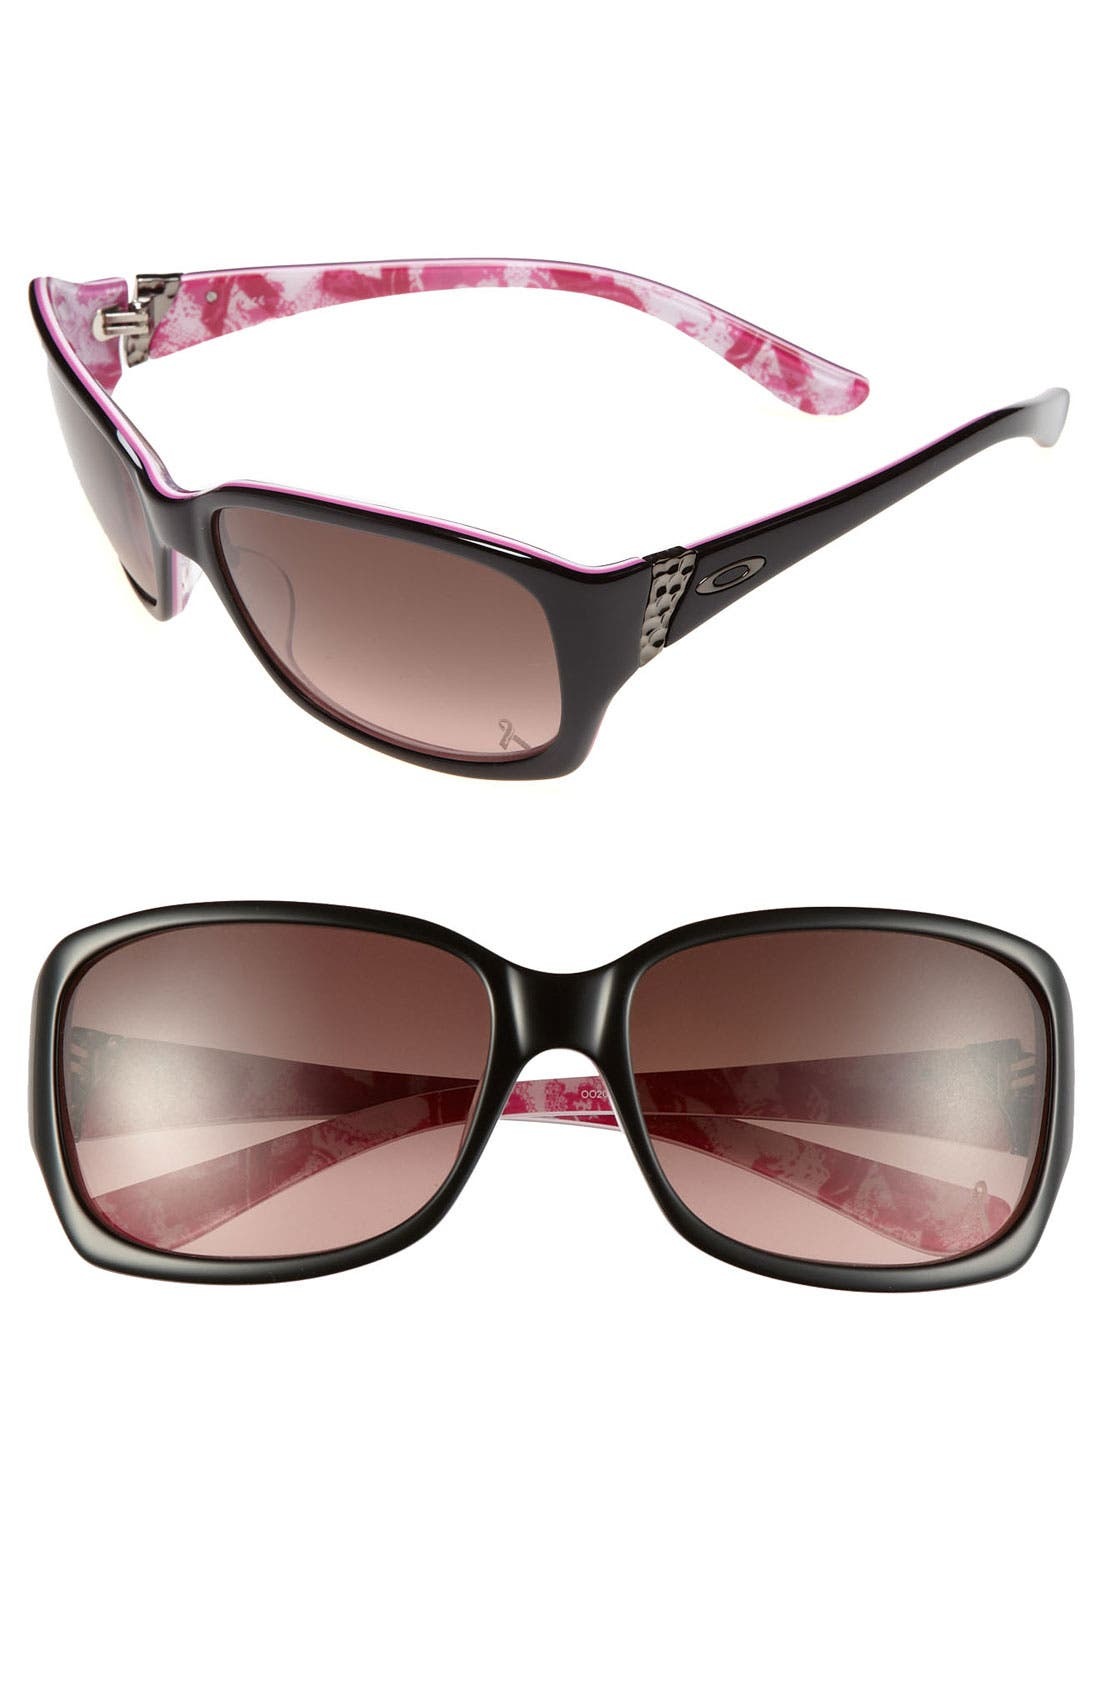 Alternate Image 1 Selected - Oakley 'Discreet® - Breast Cancer Awareness Edition' 56mm Sunglasses